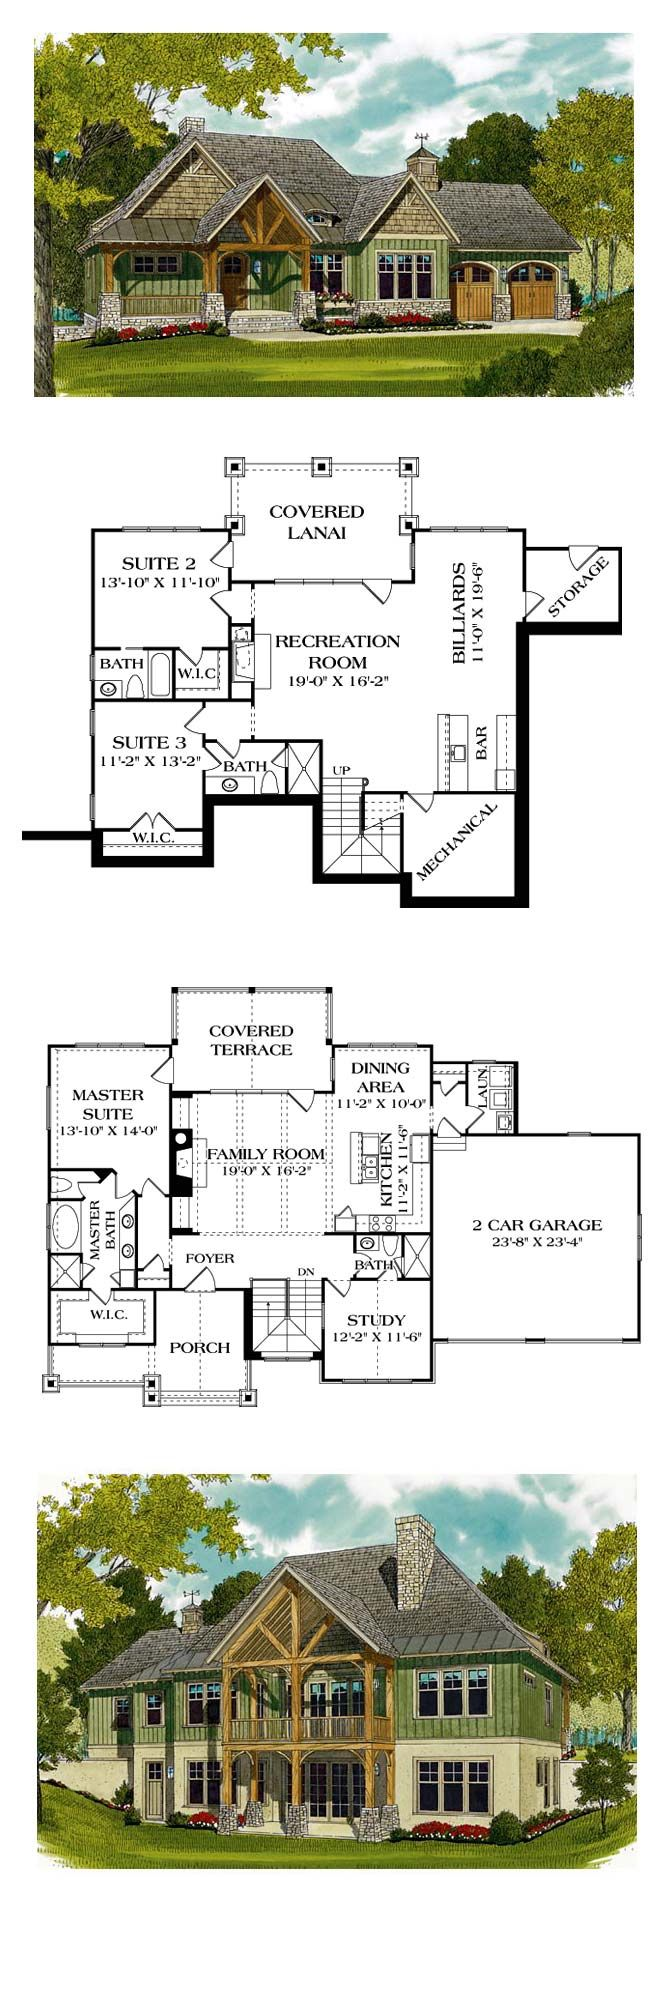 Admirable 17 Best Ideas About Lake House Plans On Pinterest House Plans Largest Home Design Picture Inspirations Pitcheantrous